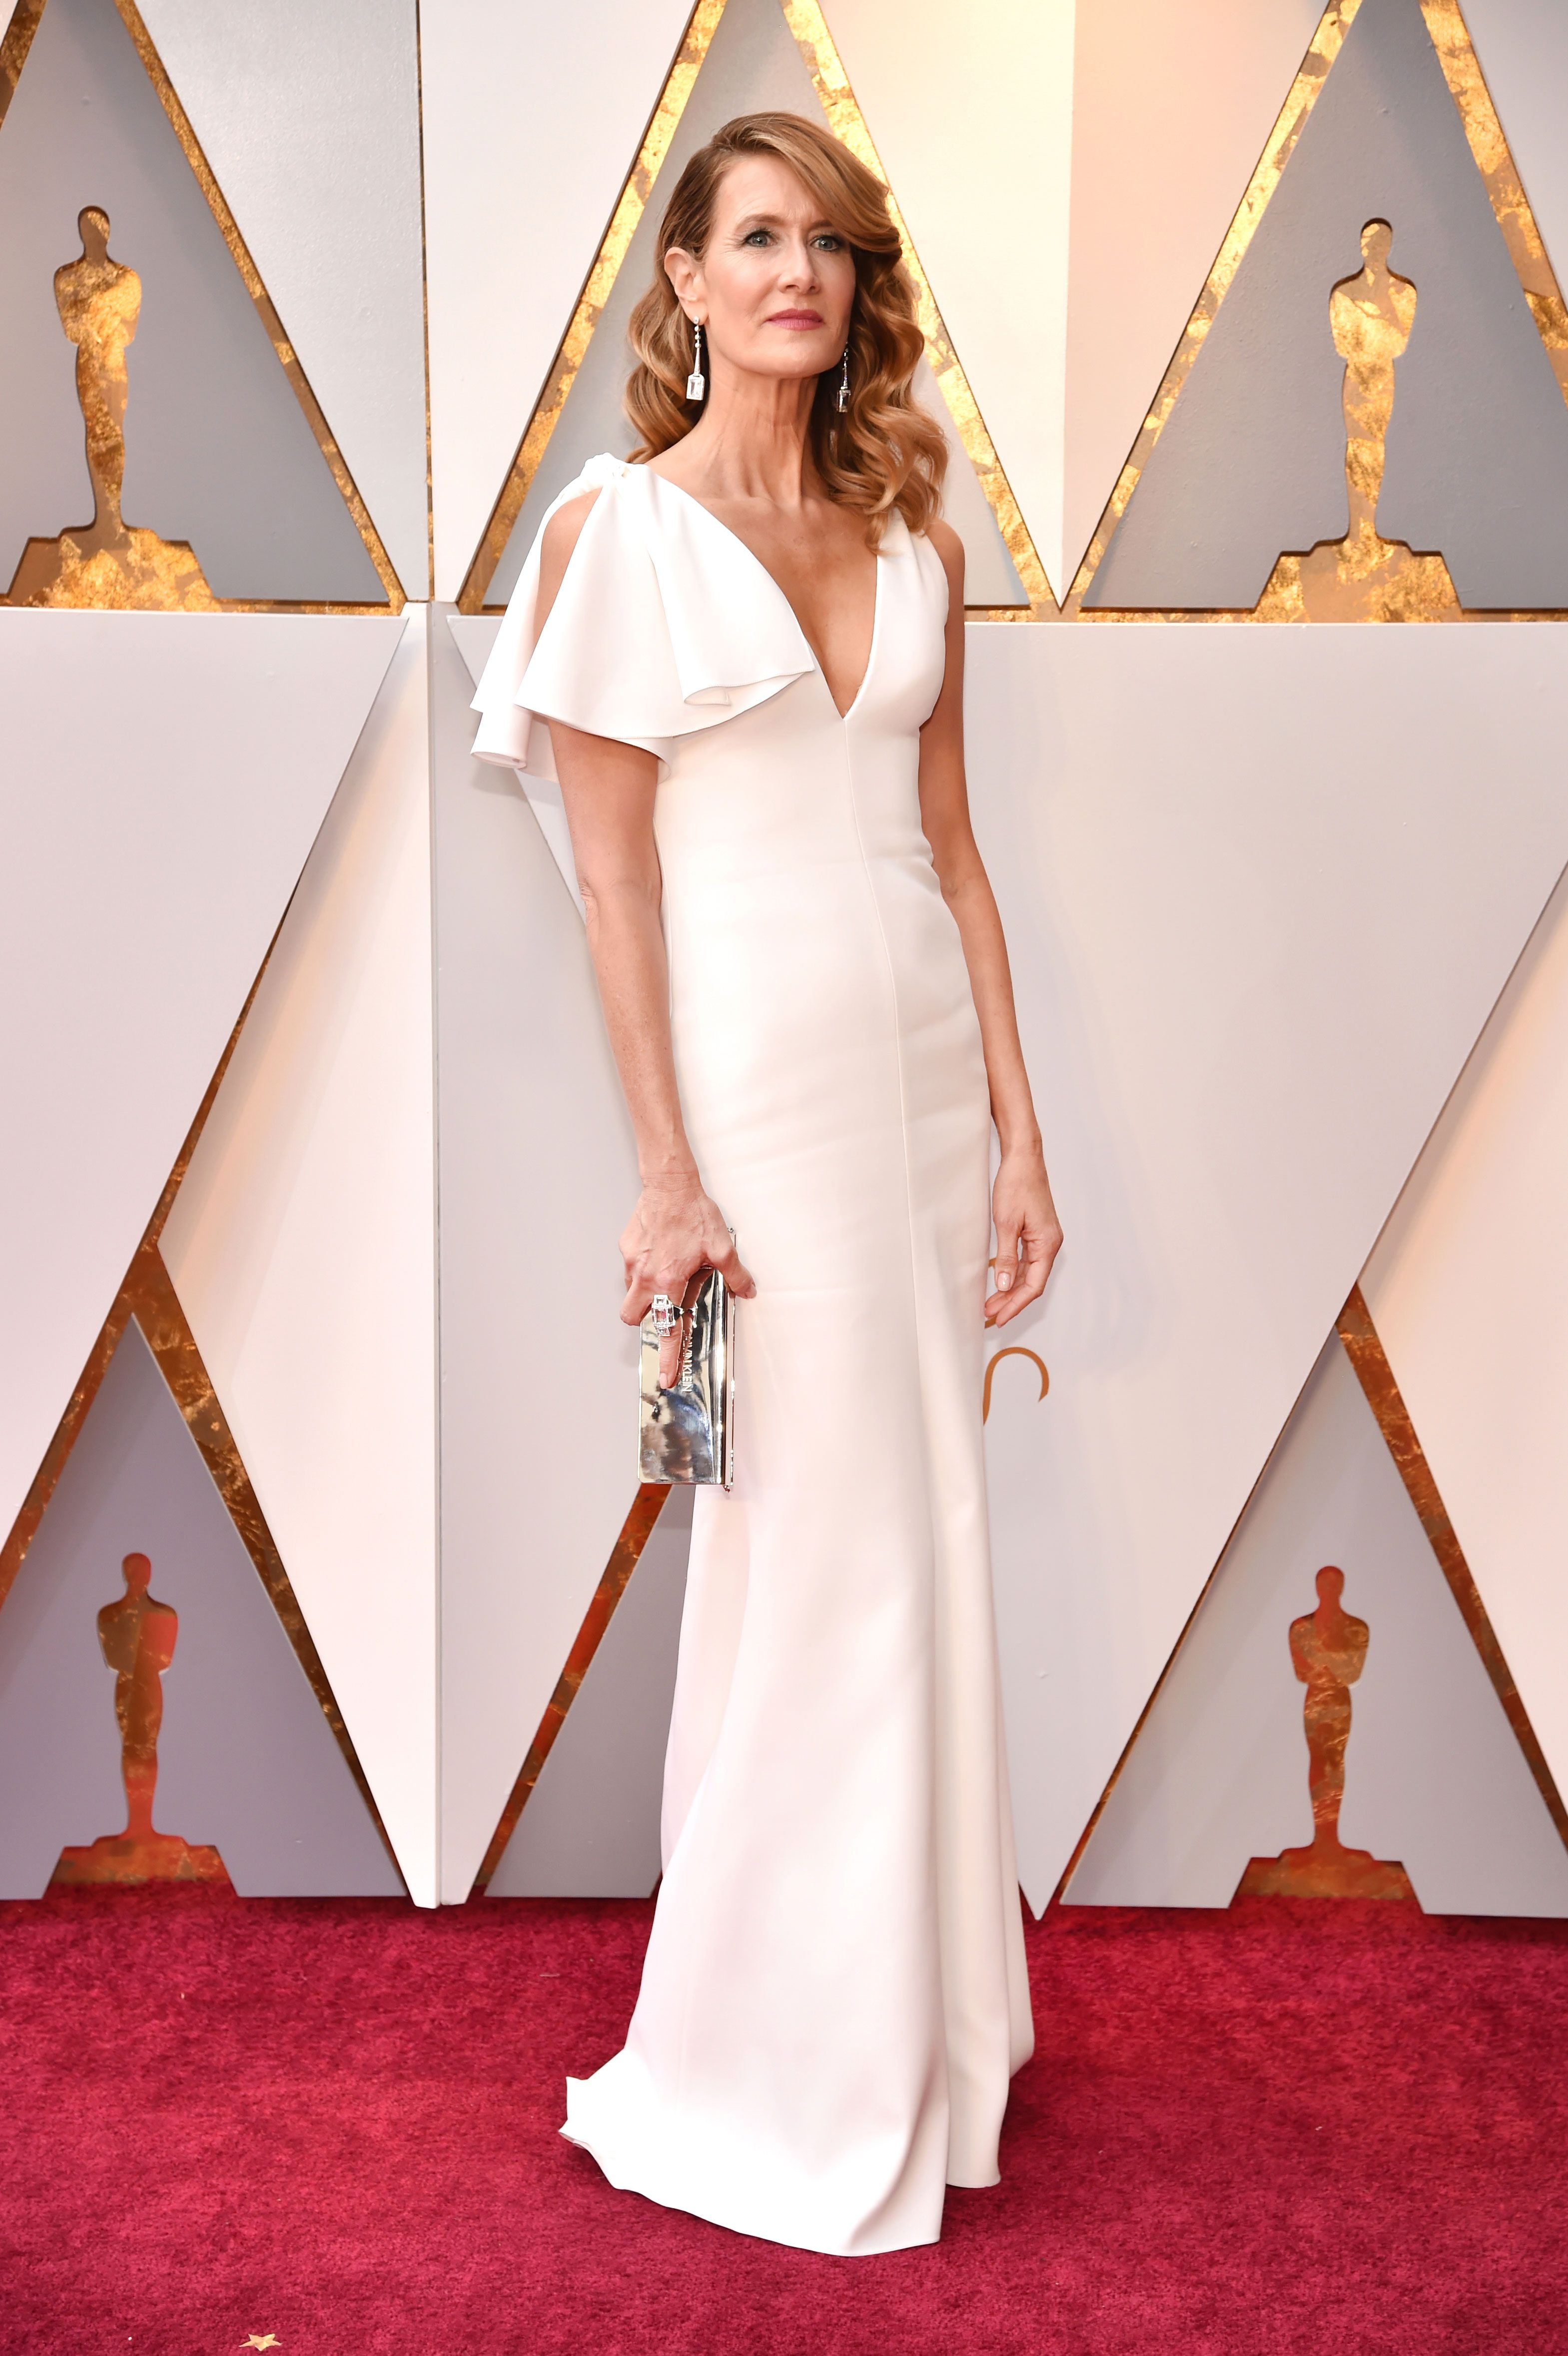 Best Oscars Red Carpet Dresses 2018 – Red Carpet Style From Academy Awards adba7b5f4